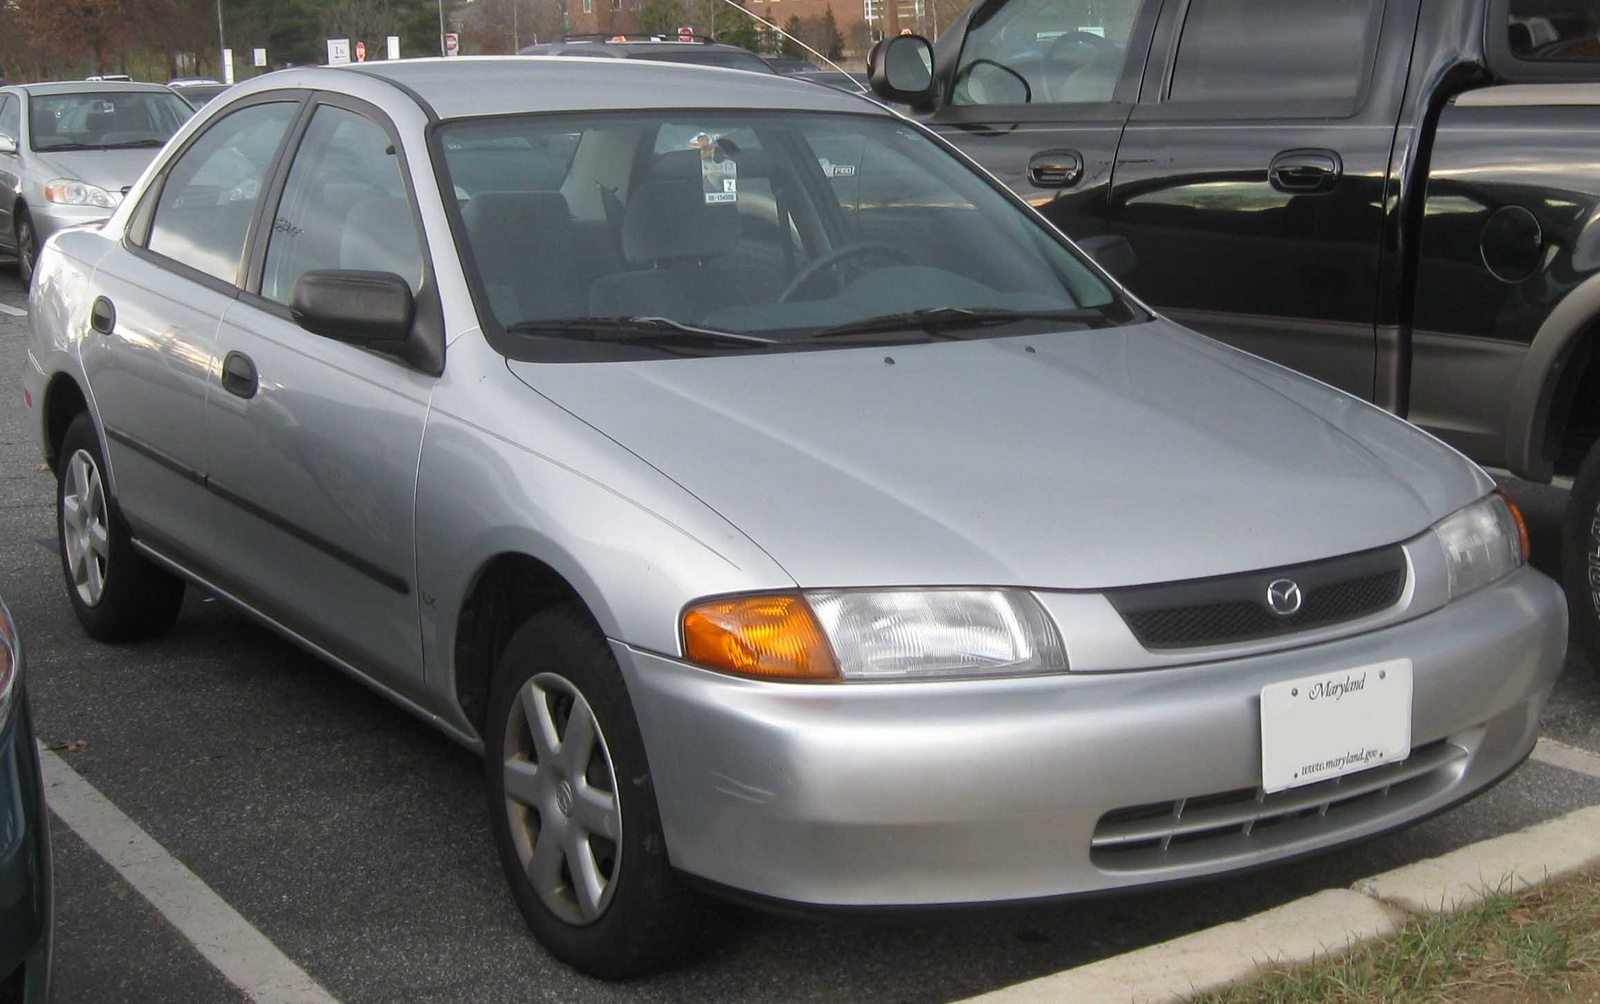 1998 Mazda Protege 4 Dr ES Sedan picture